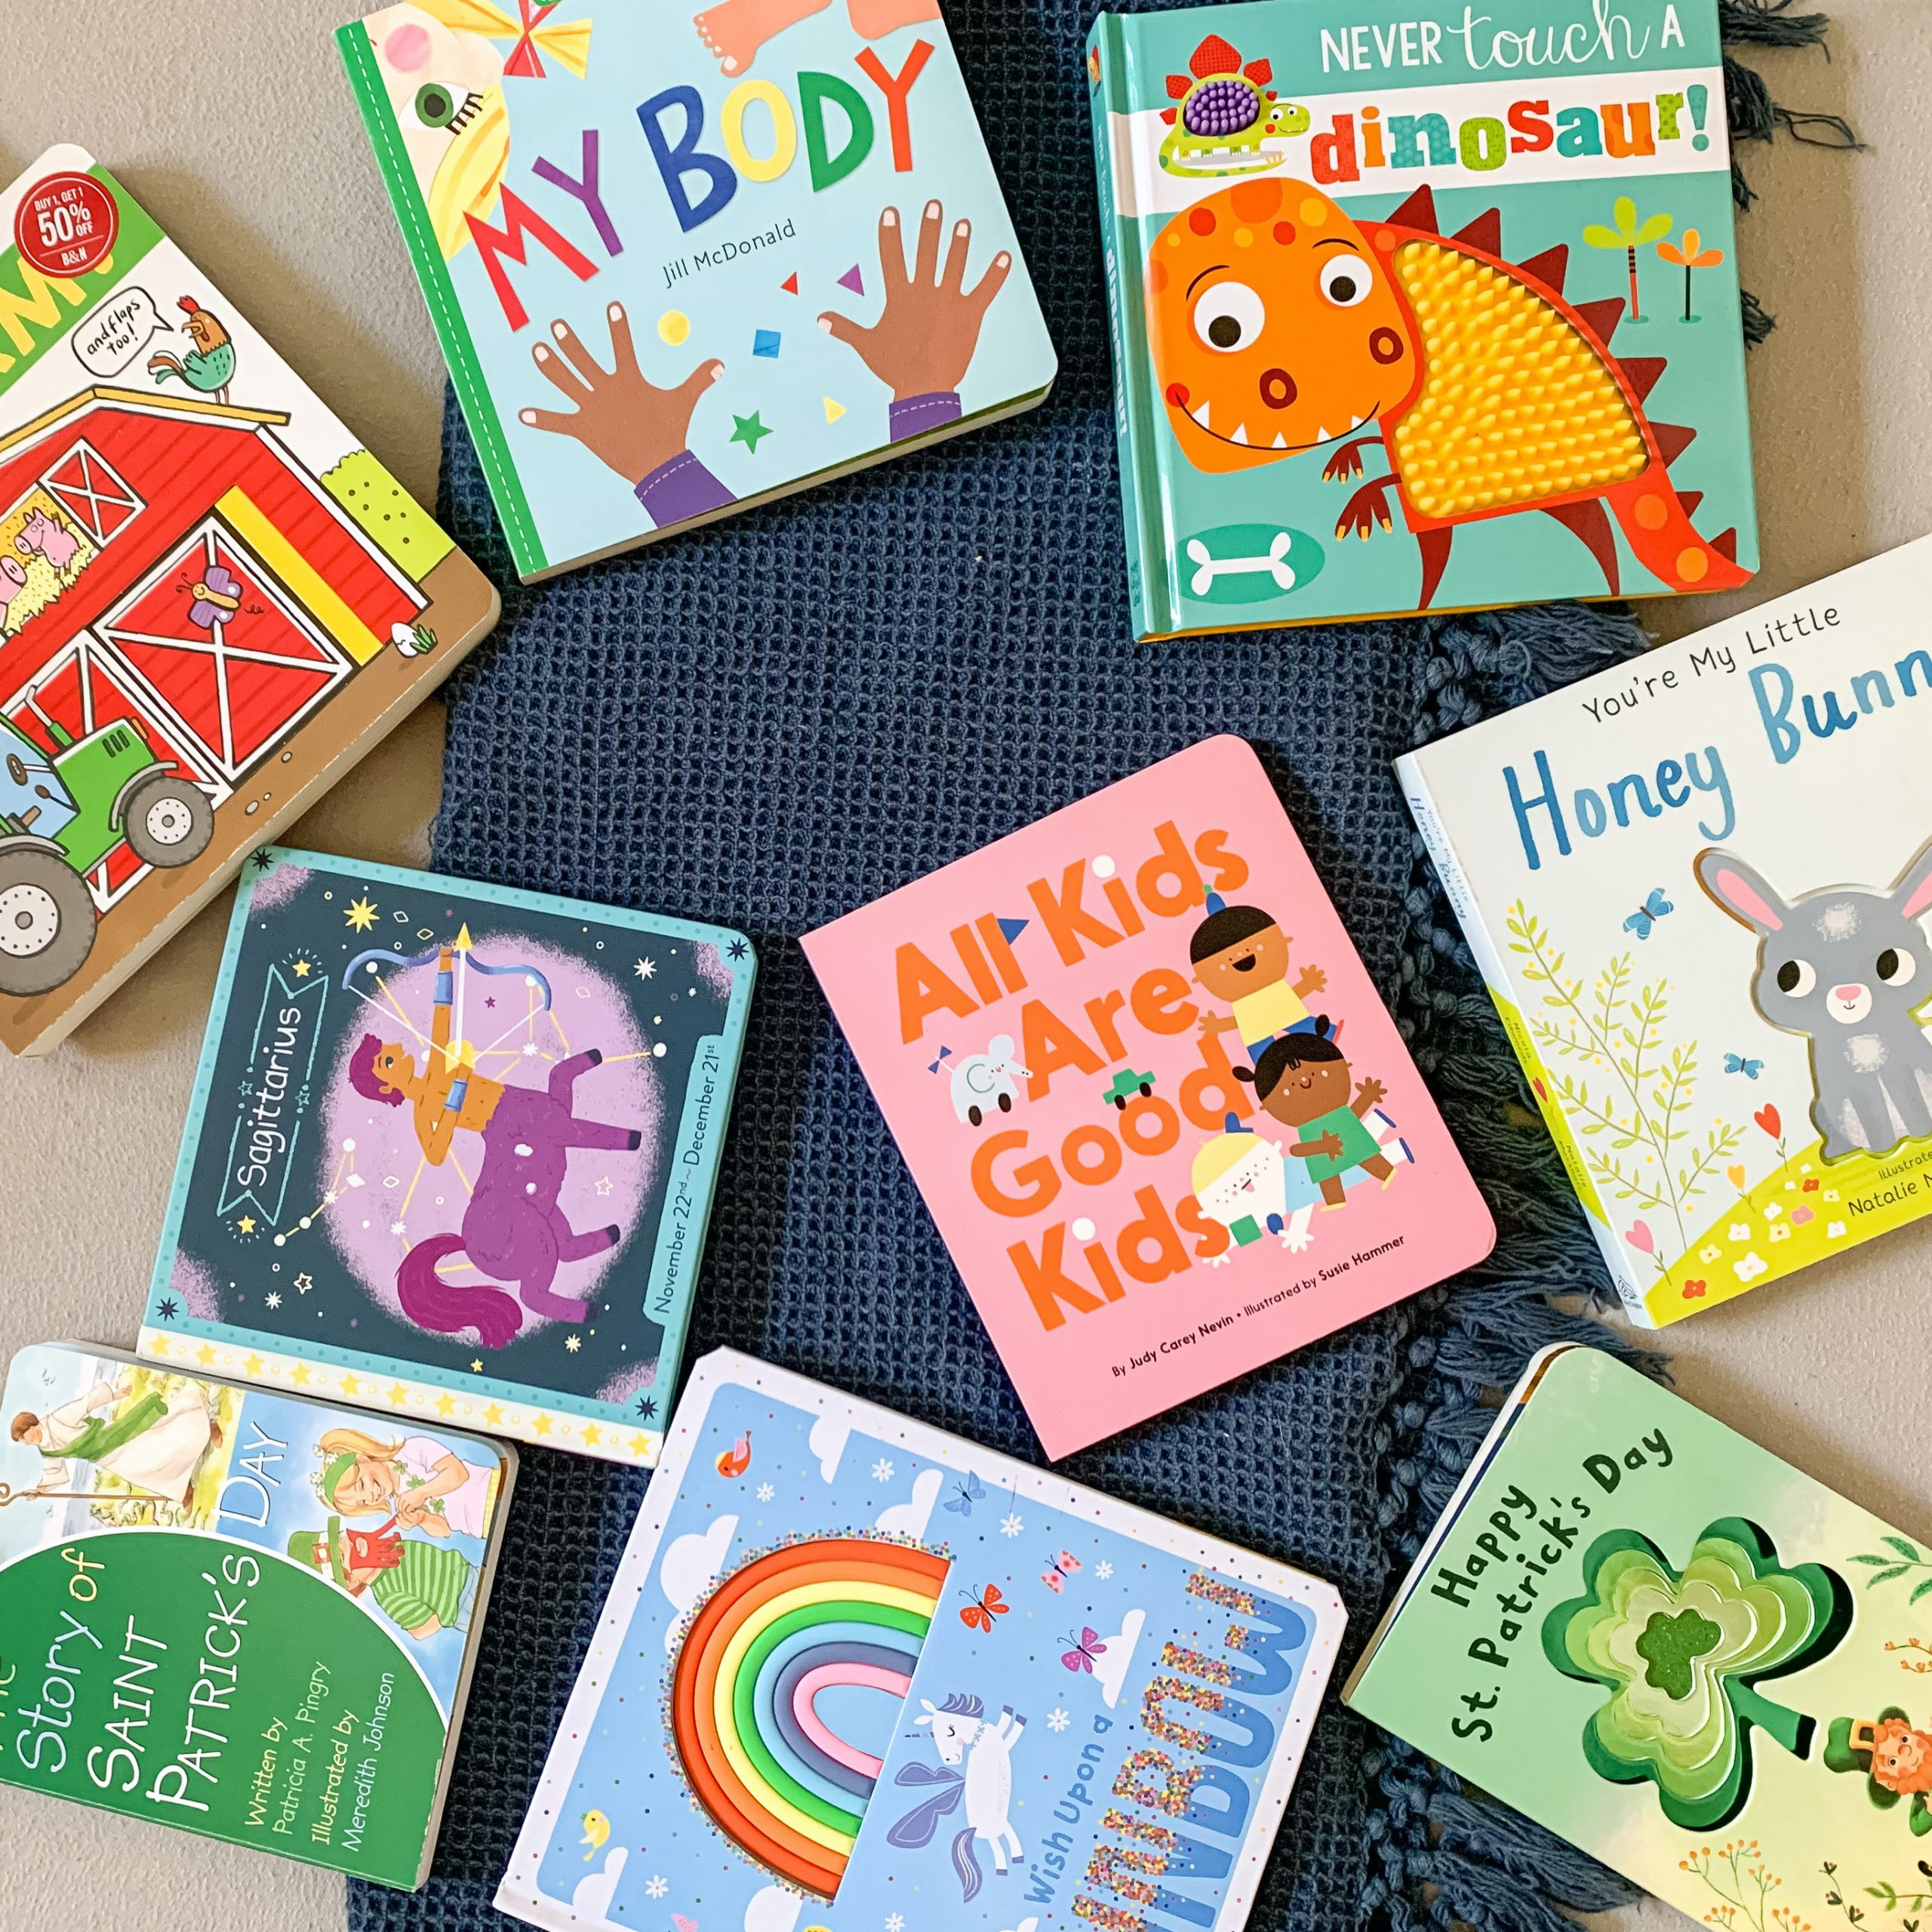 12 March Themed Board Books for One-Year-Olds